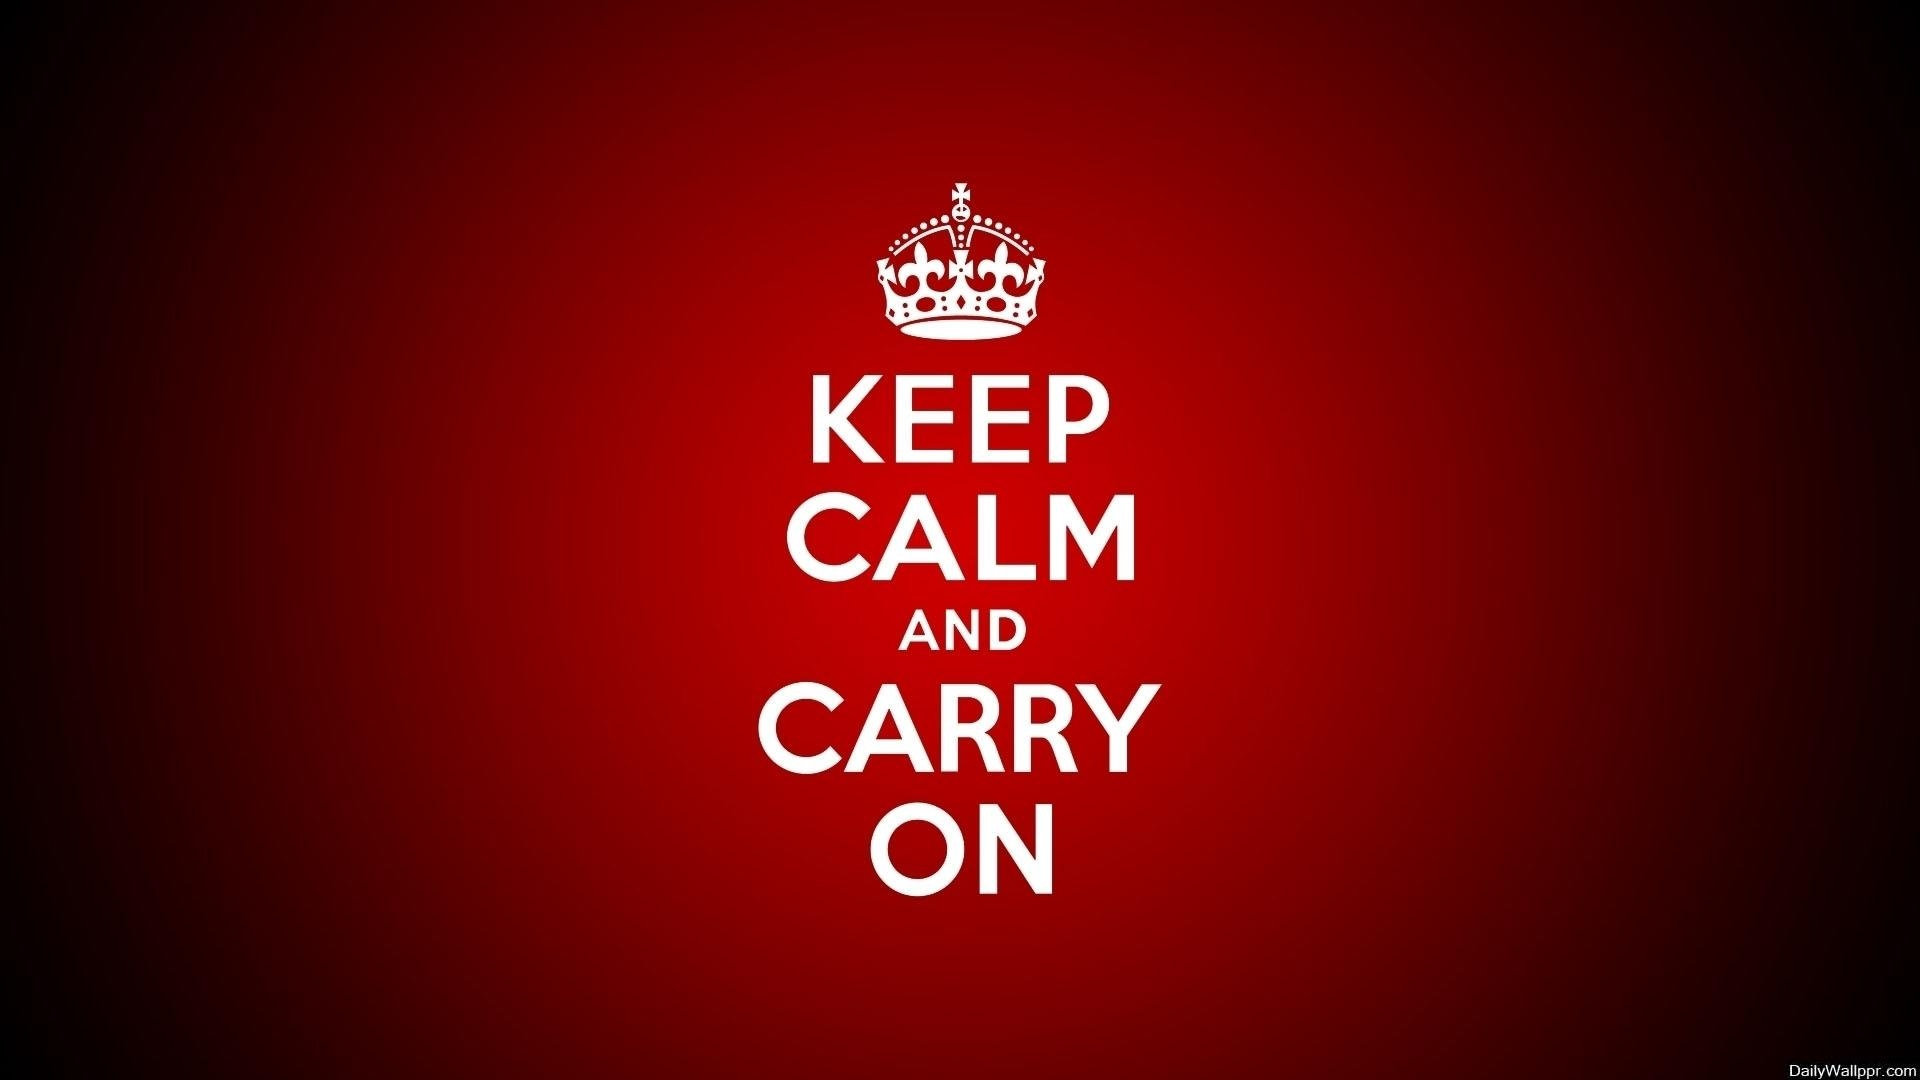 Keep Calm And Carry On – Wallpaper (Image 5 of 20)